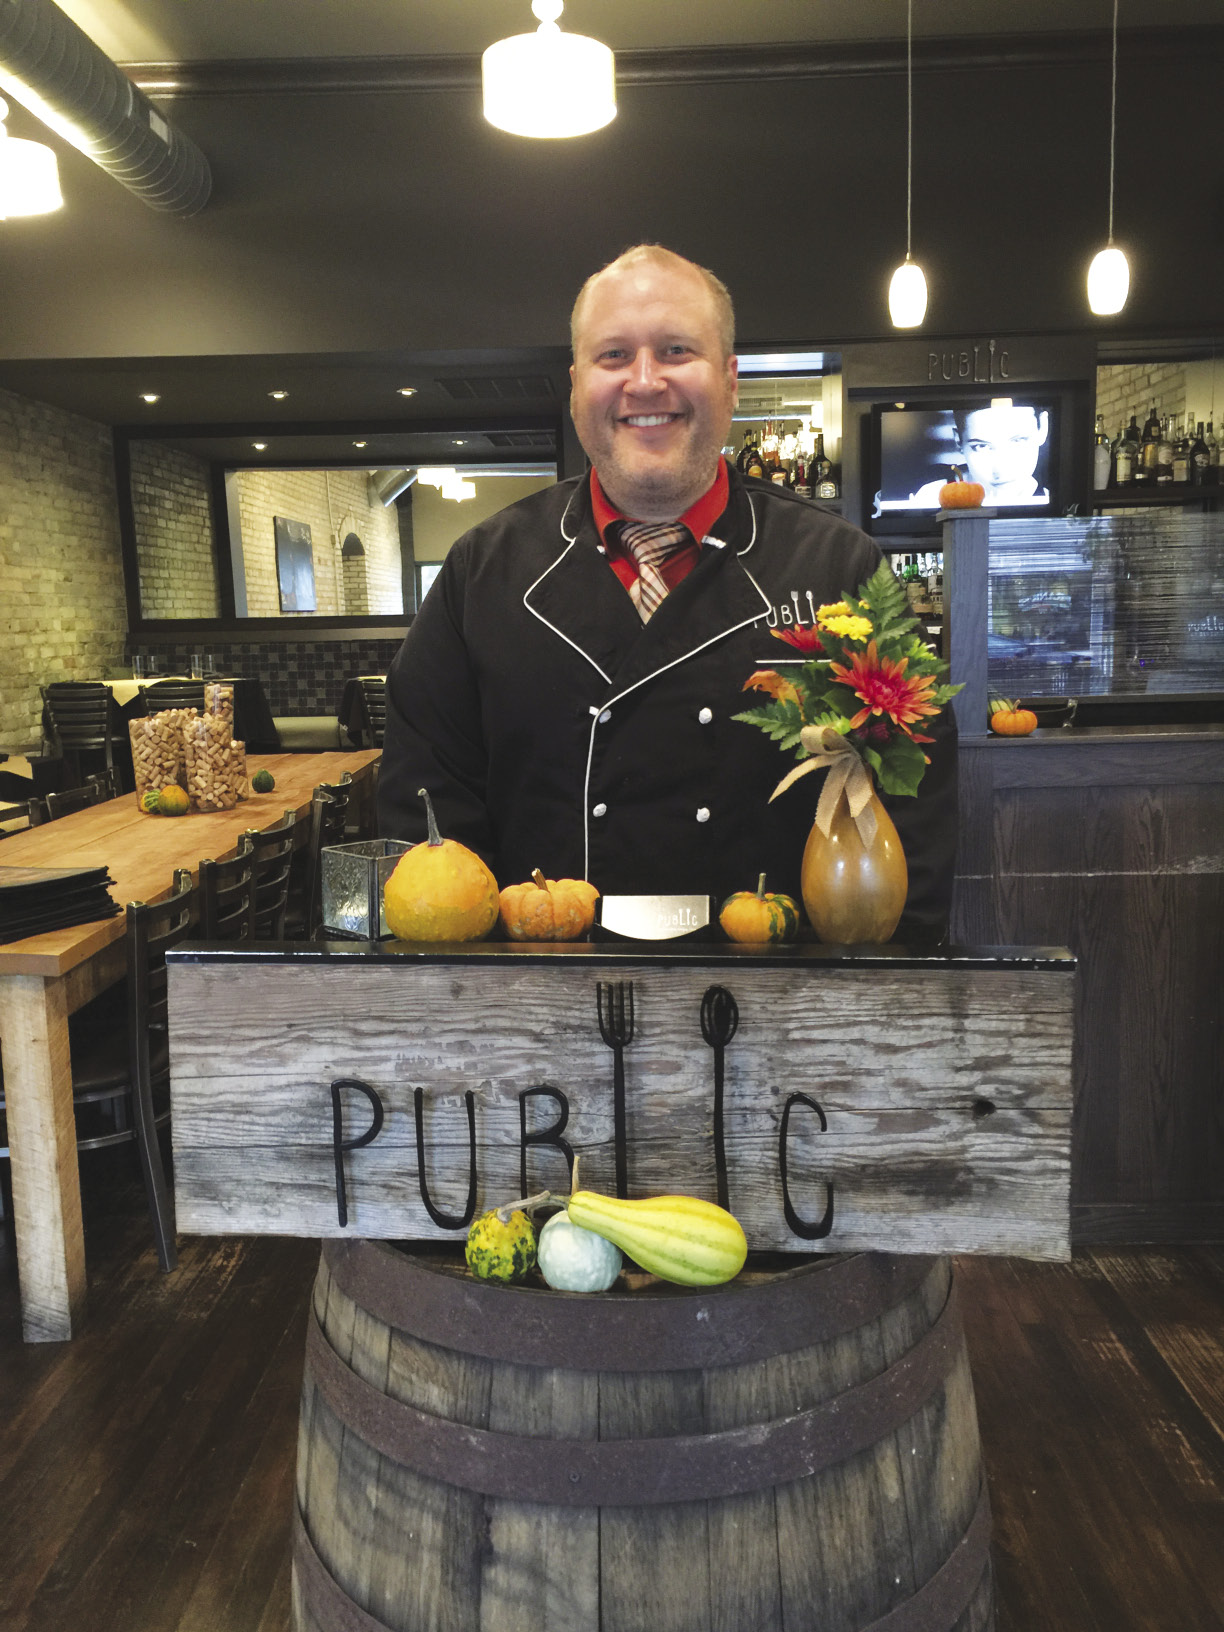 Photo of Luke Grill, chef at Public restaurant